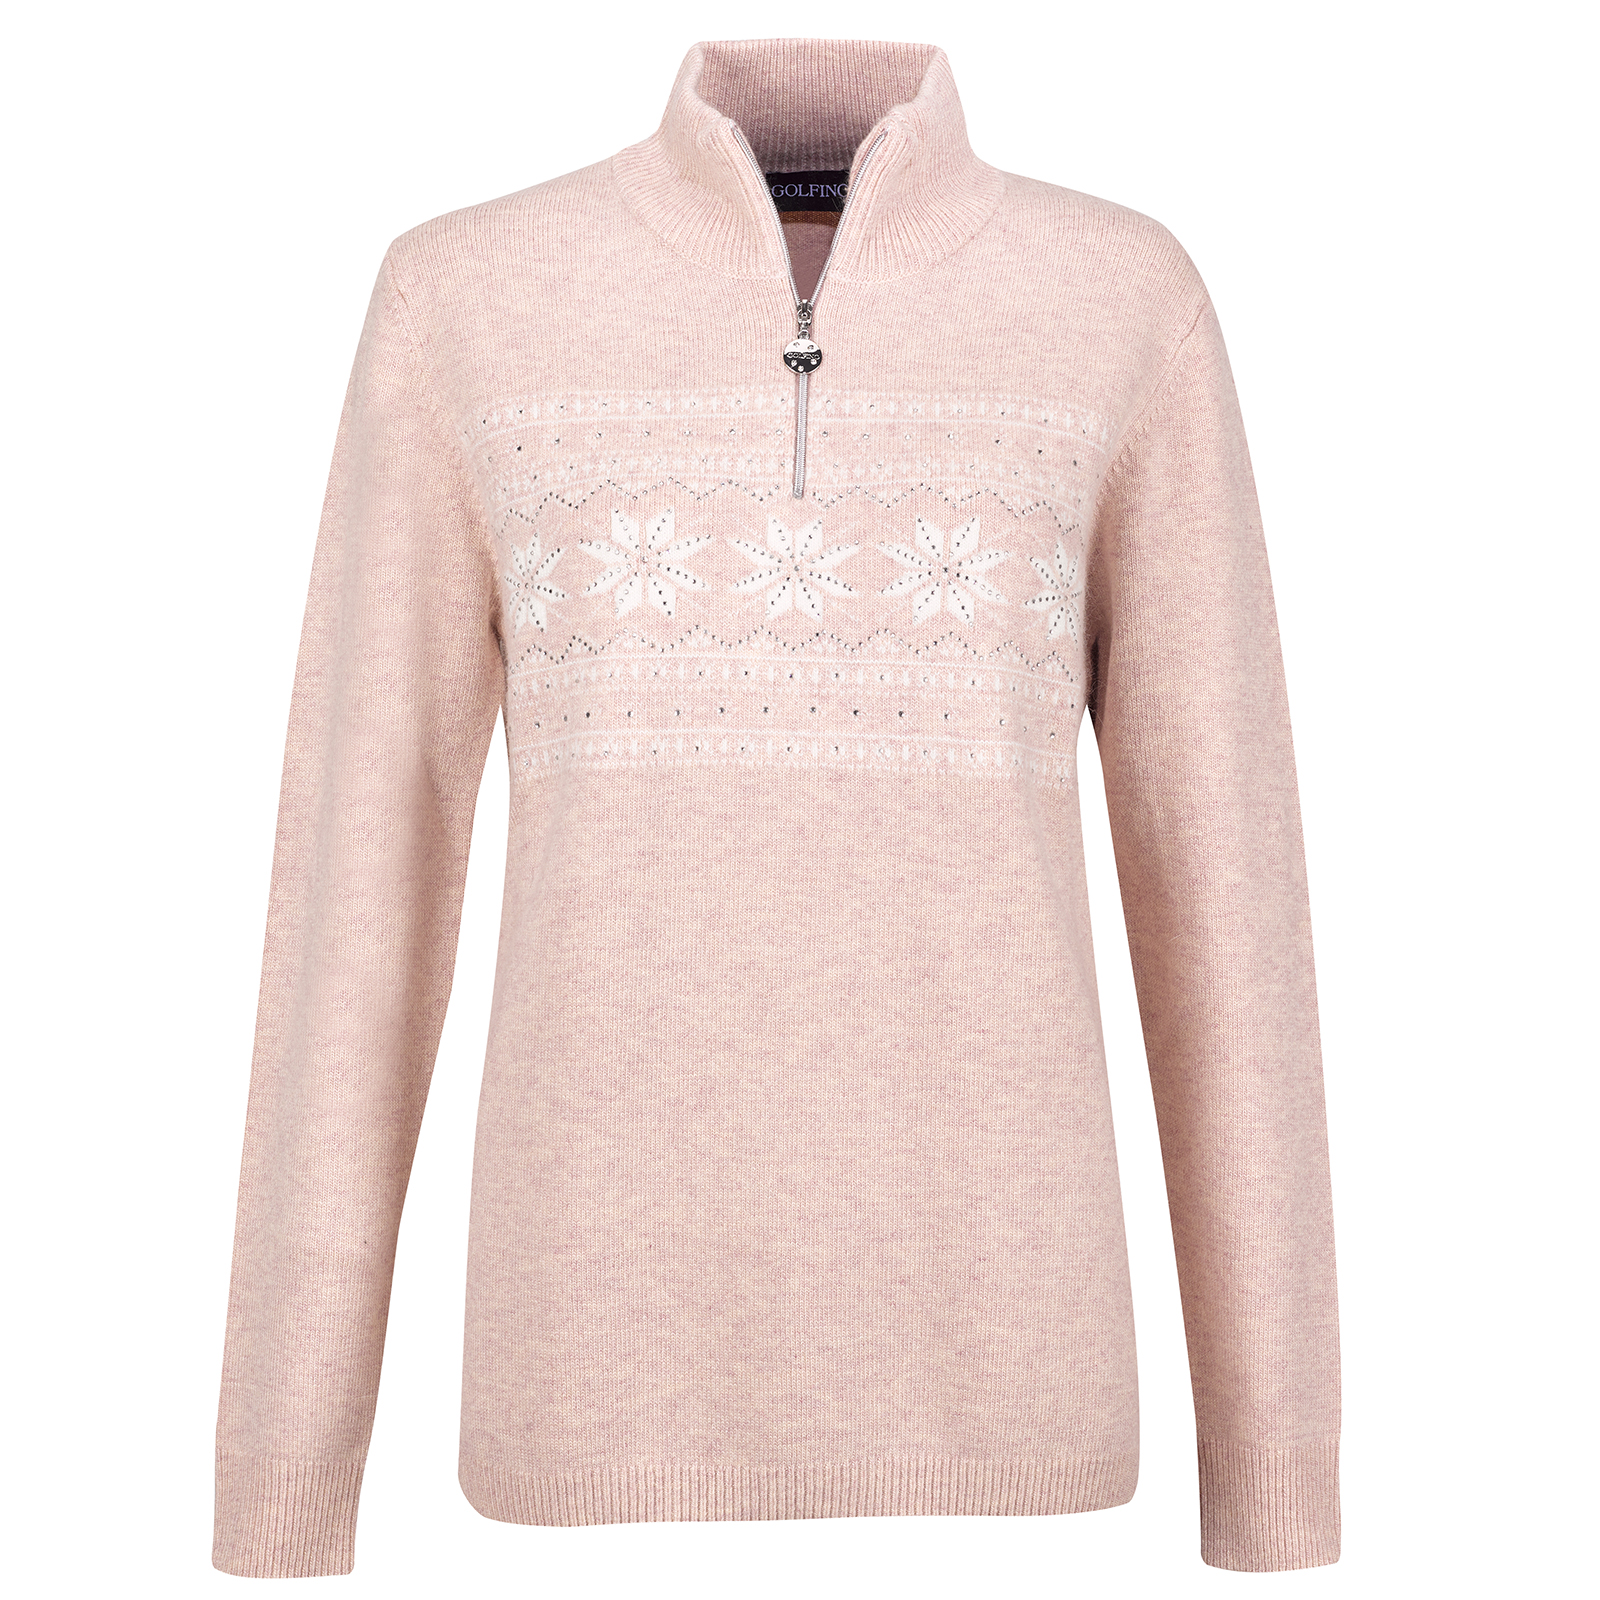 Ladies' luxury winter knitted pullover with Angora and crystals